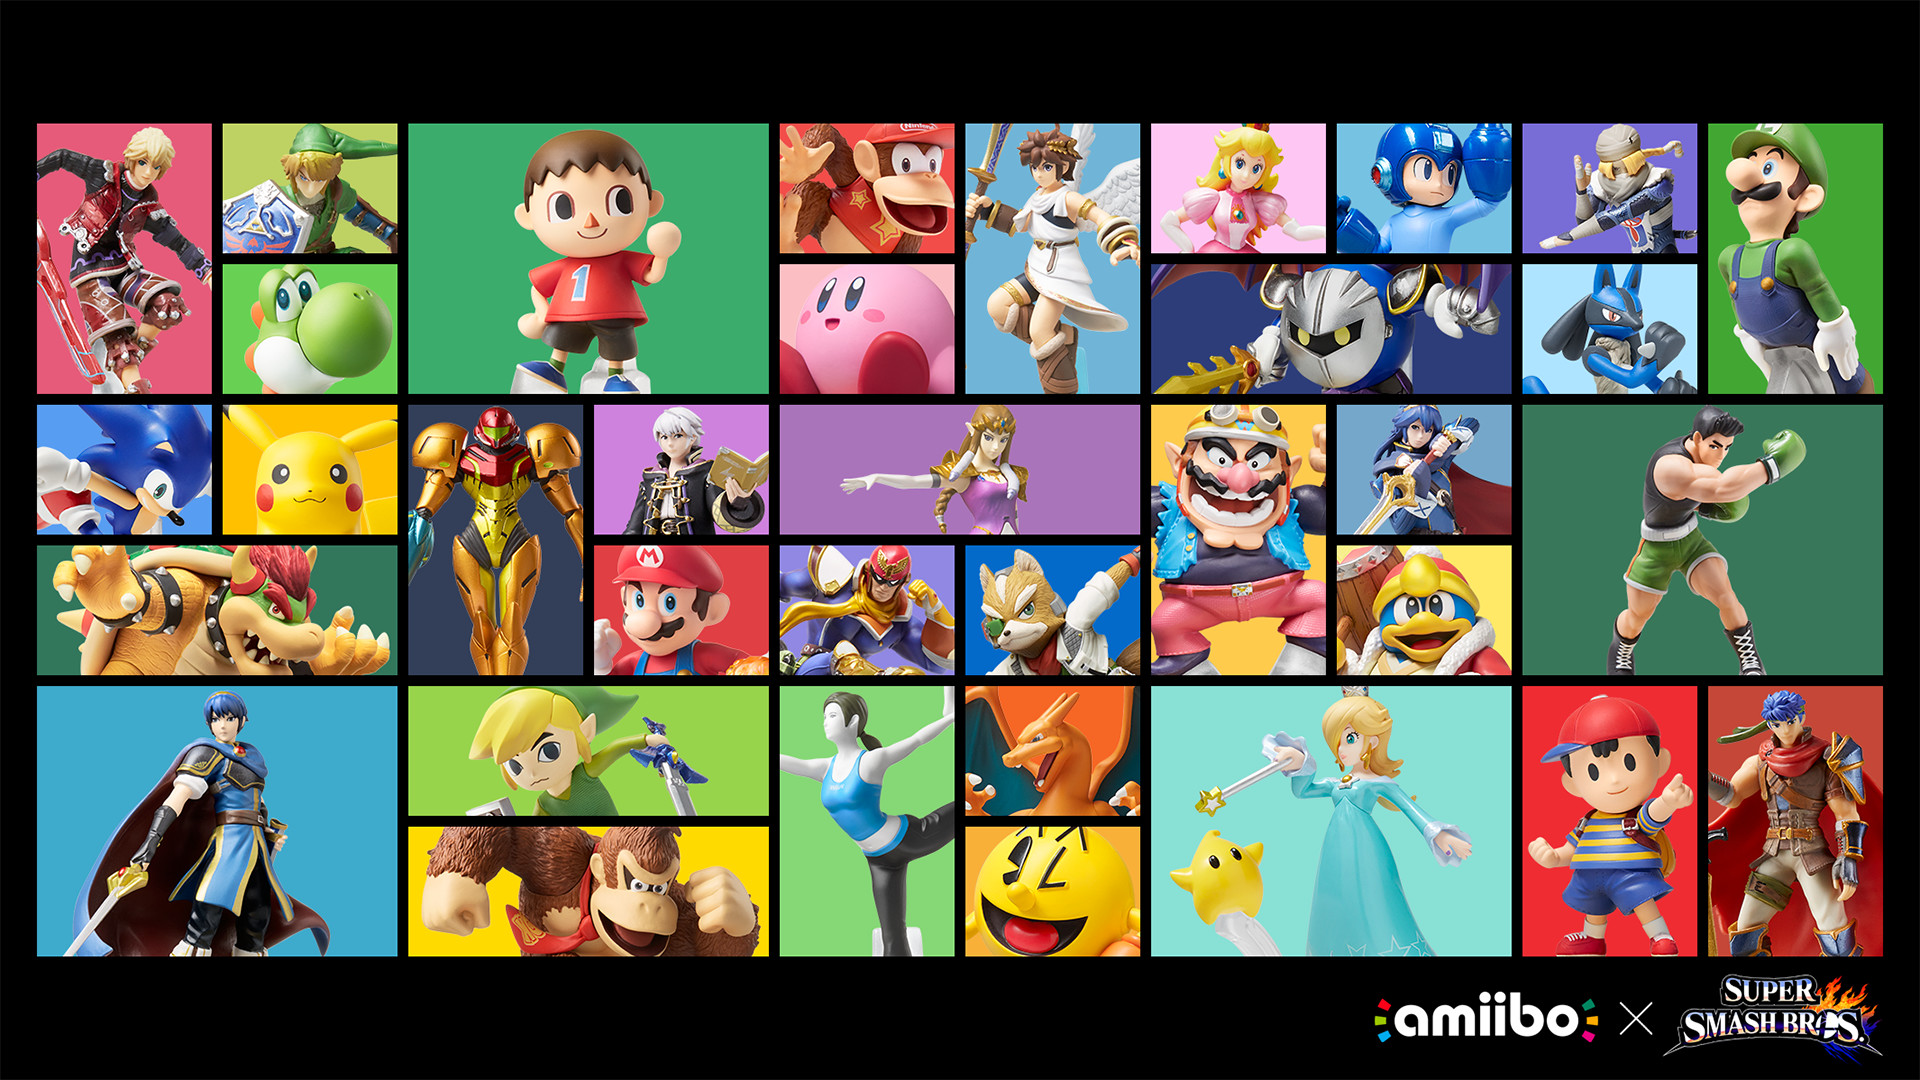 2000x1100 Super Smash Bros 3DS Wii U